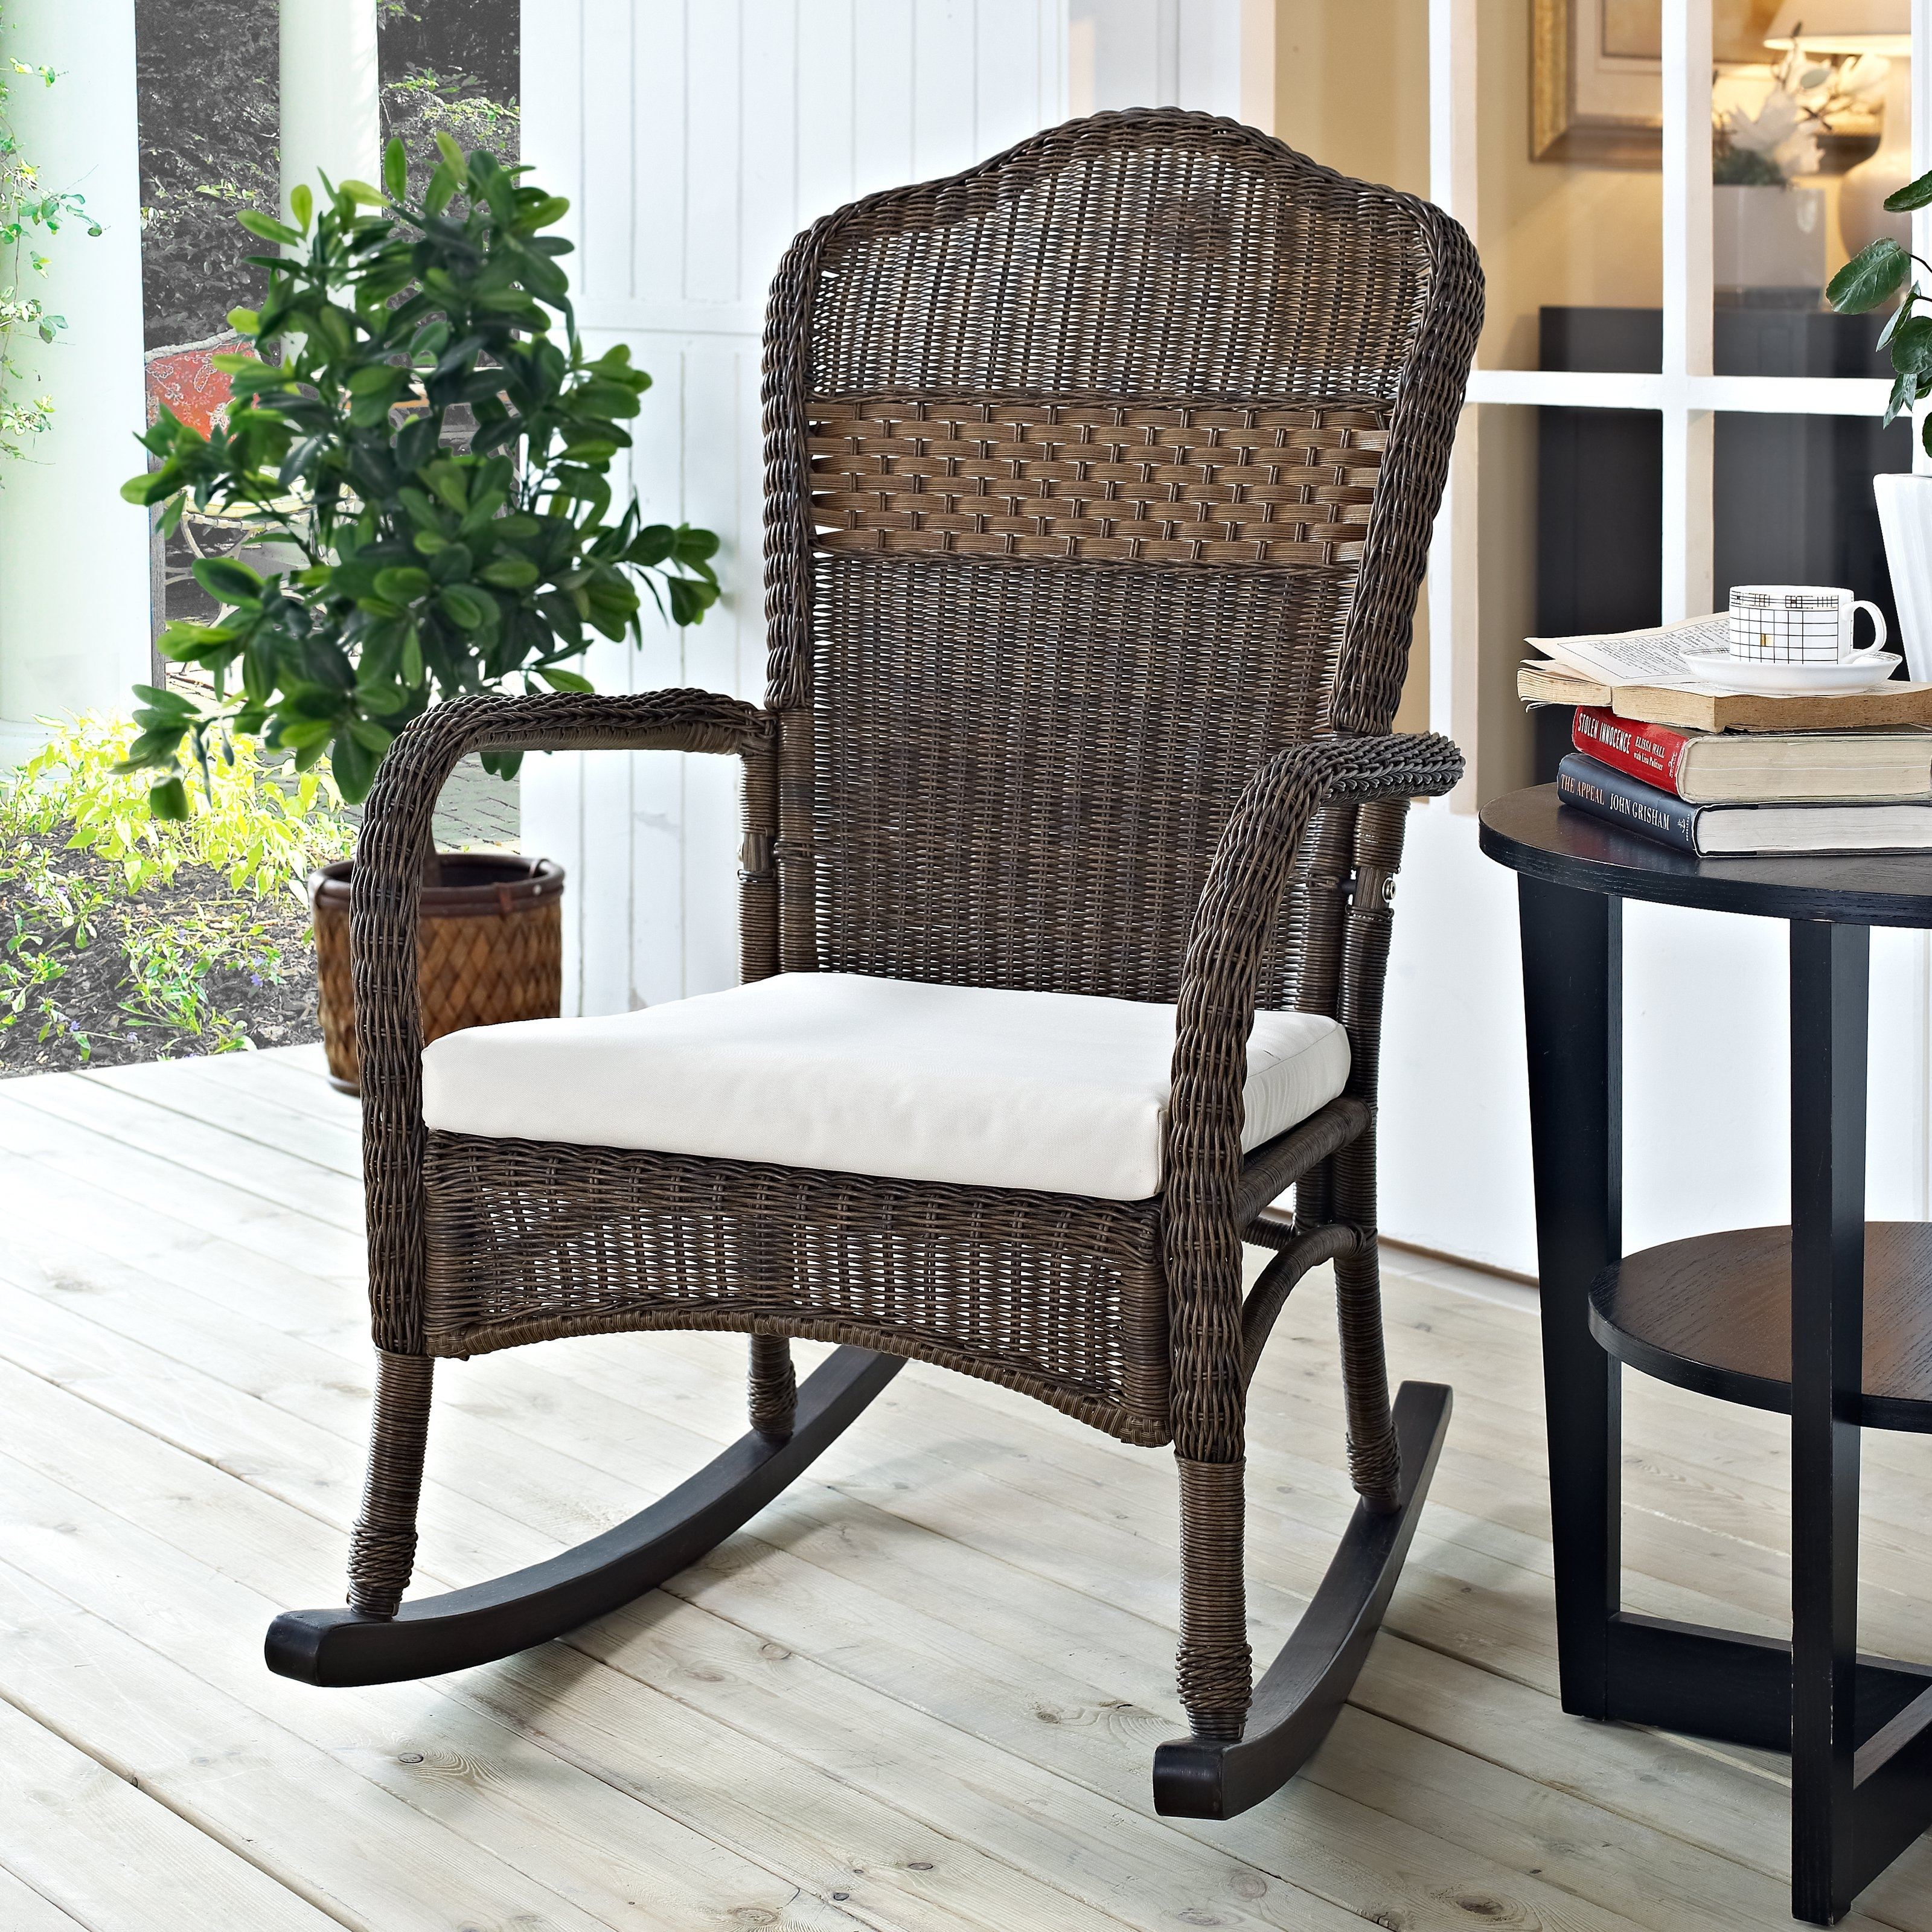 Inspiration about 55 White Wicker Rocking Chair, 3 Pc Outdoor Patio Coastal White Pertaining To White Resin Patio Rocking Chairs (#9 of 15)